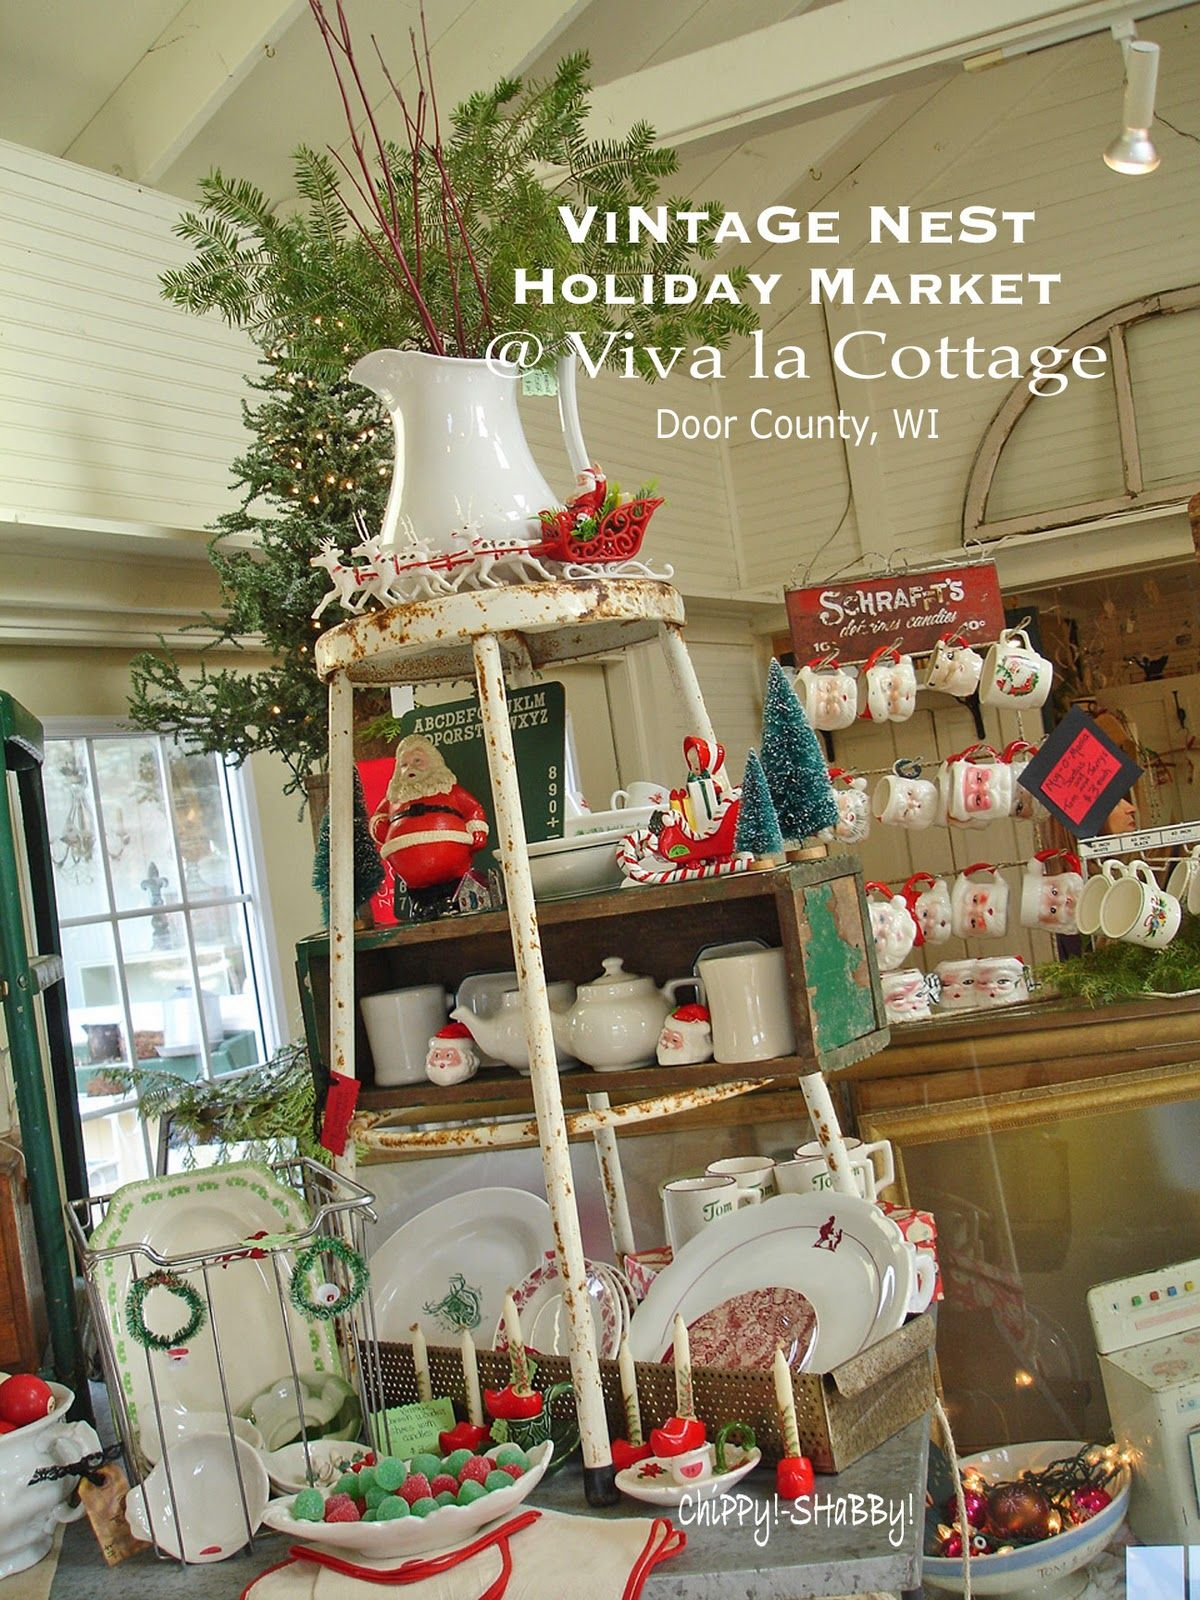 shabby vintage market display | ChiPPy! - SHaBBy!: **DOOR COUNTY** Wisconsin ~ Just for the DaY!*!*!